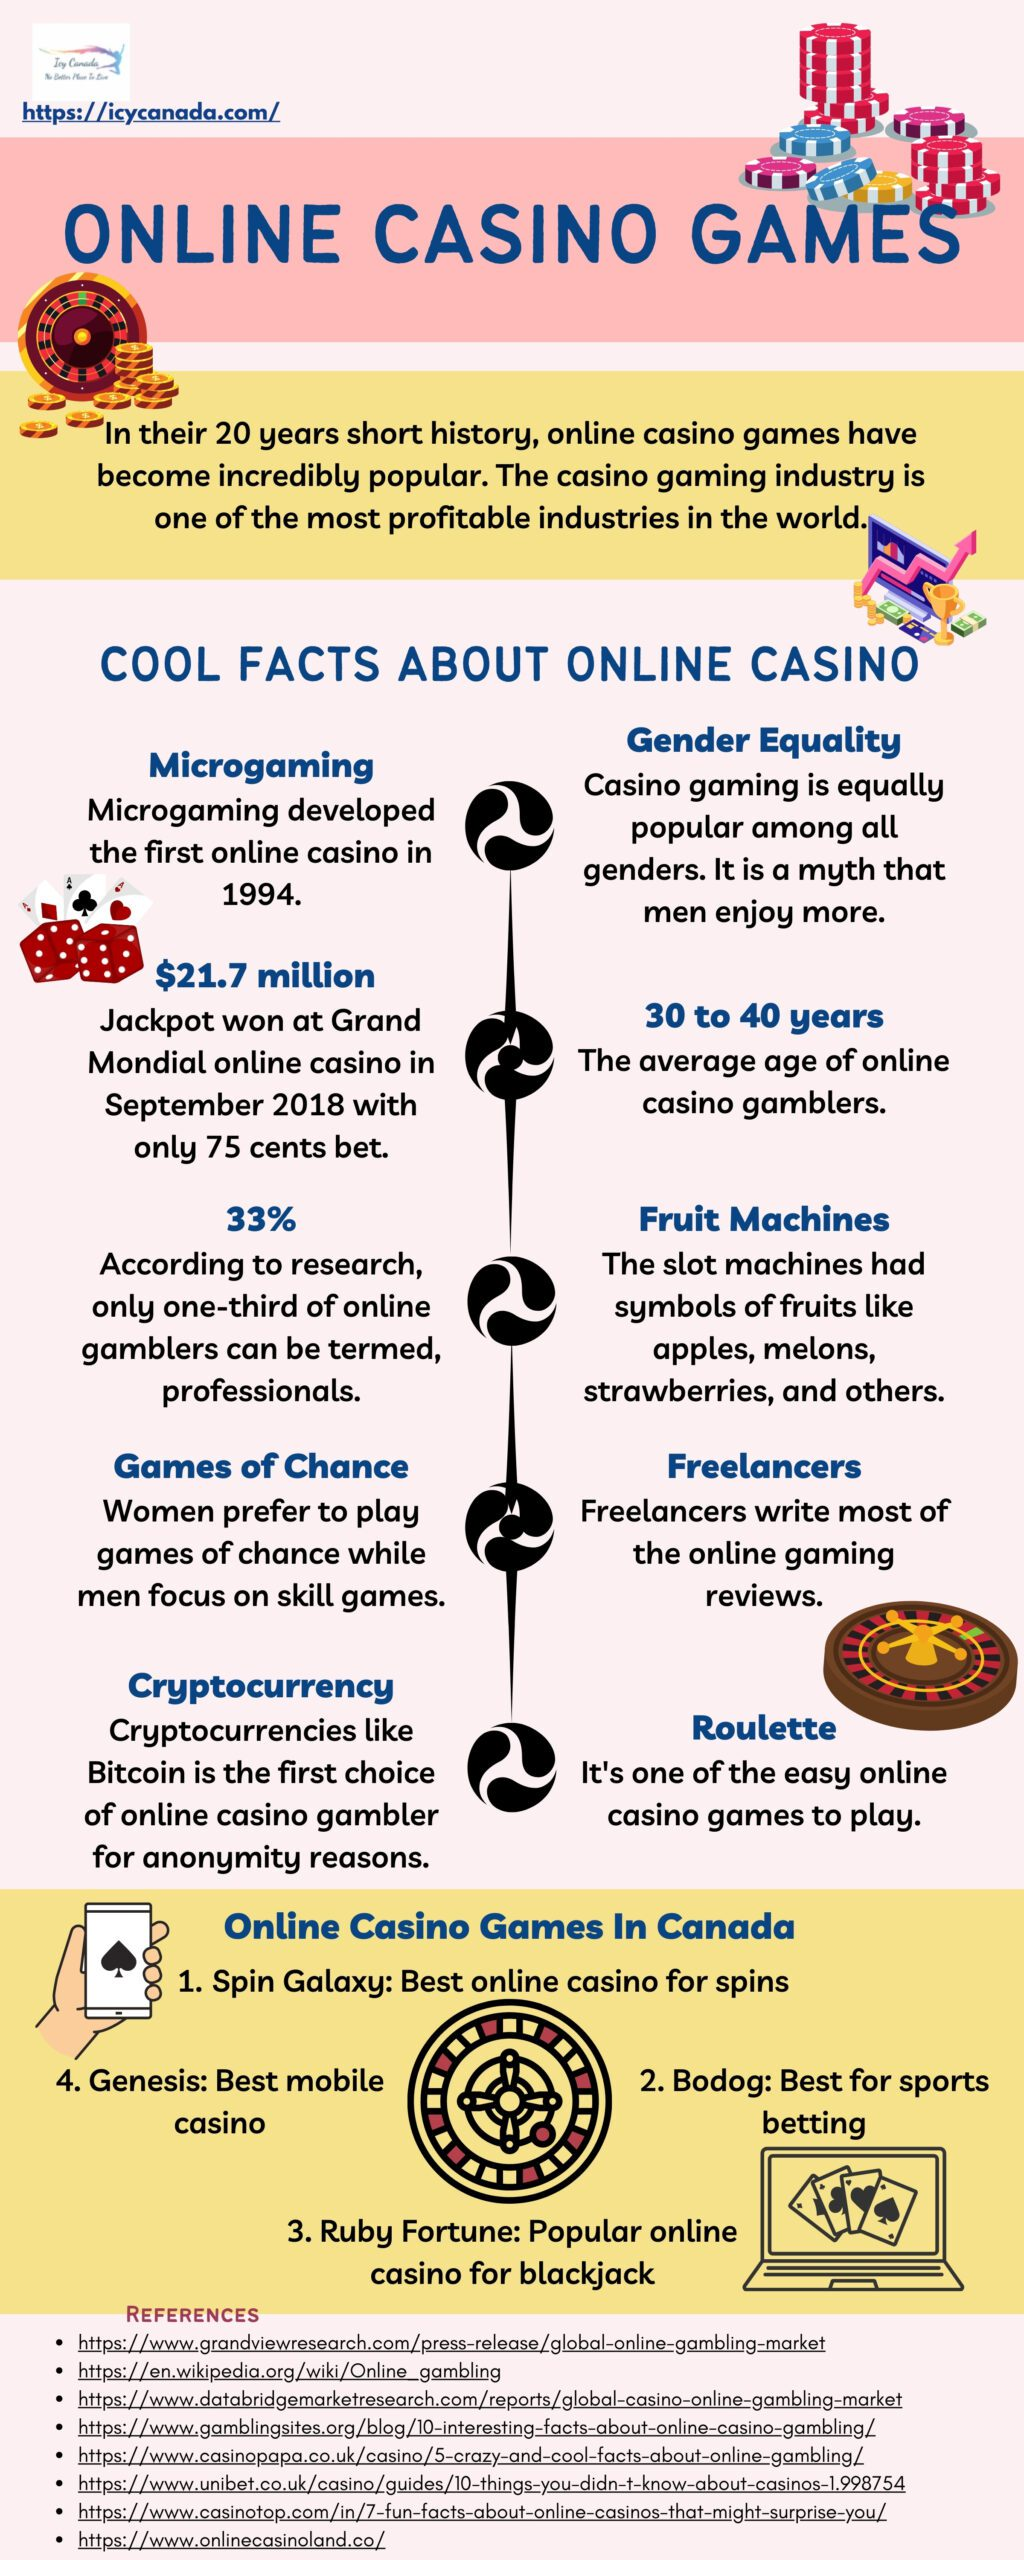 Cool Facts About Online Casino